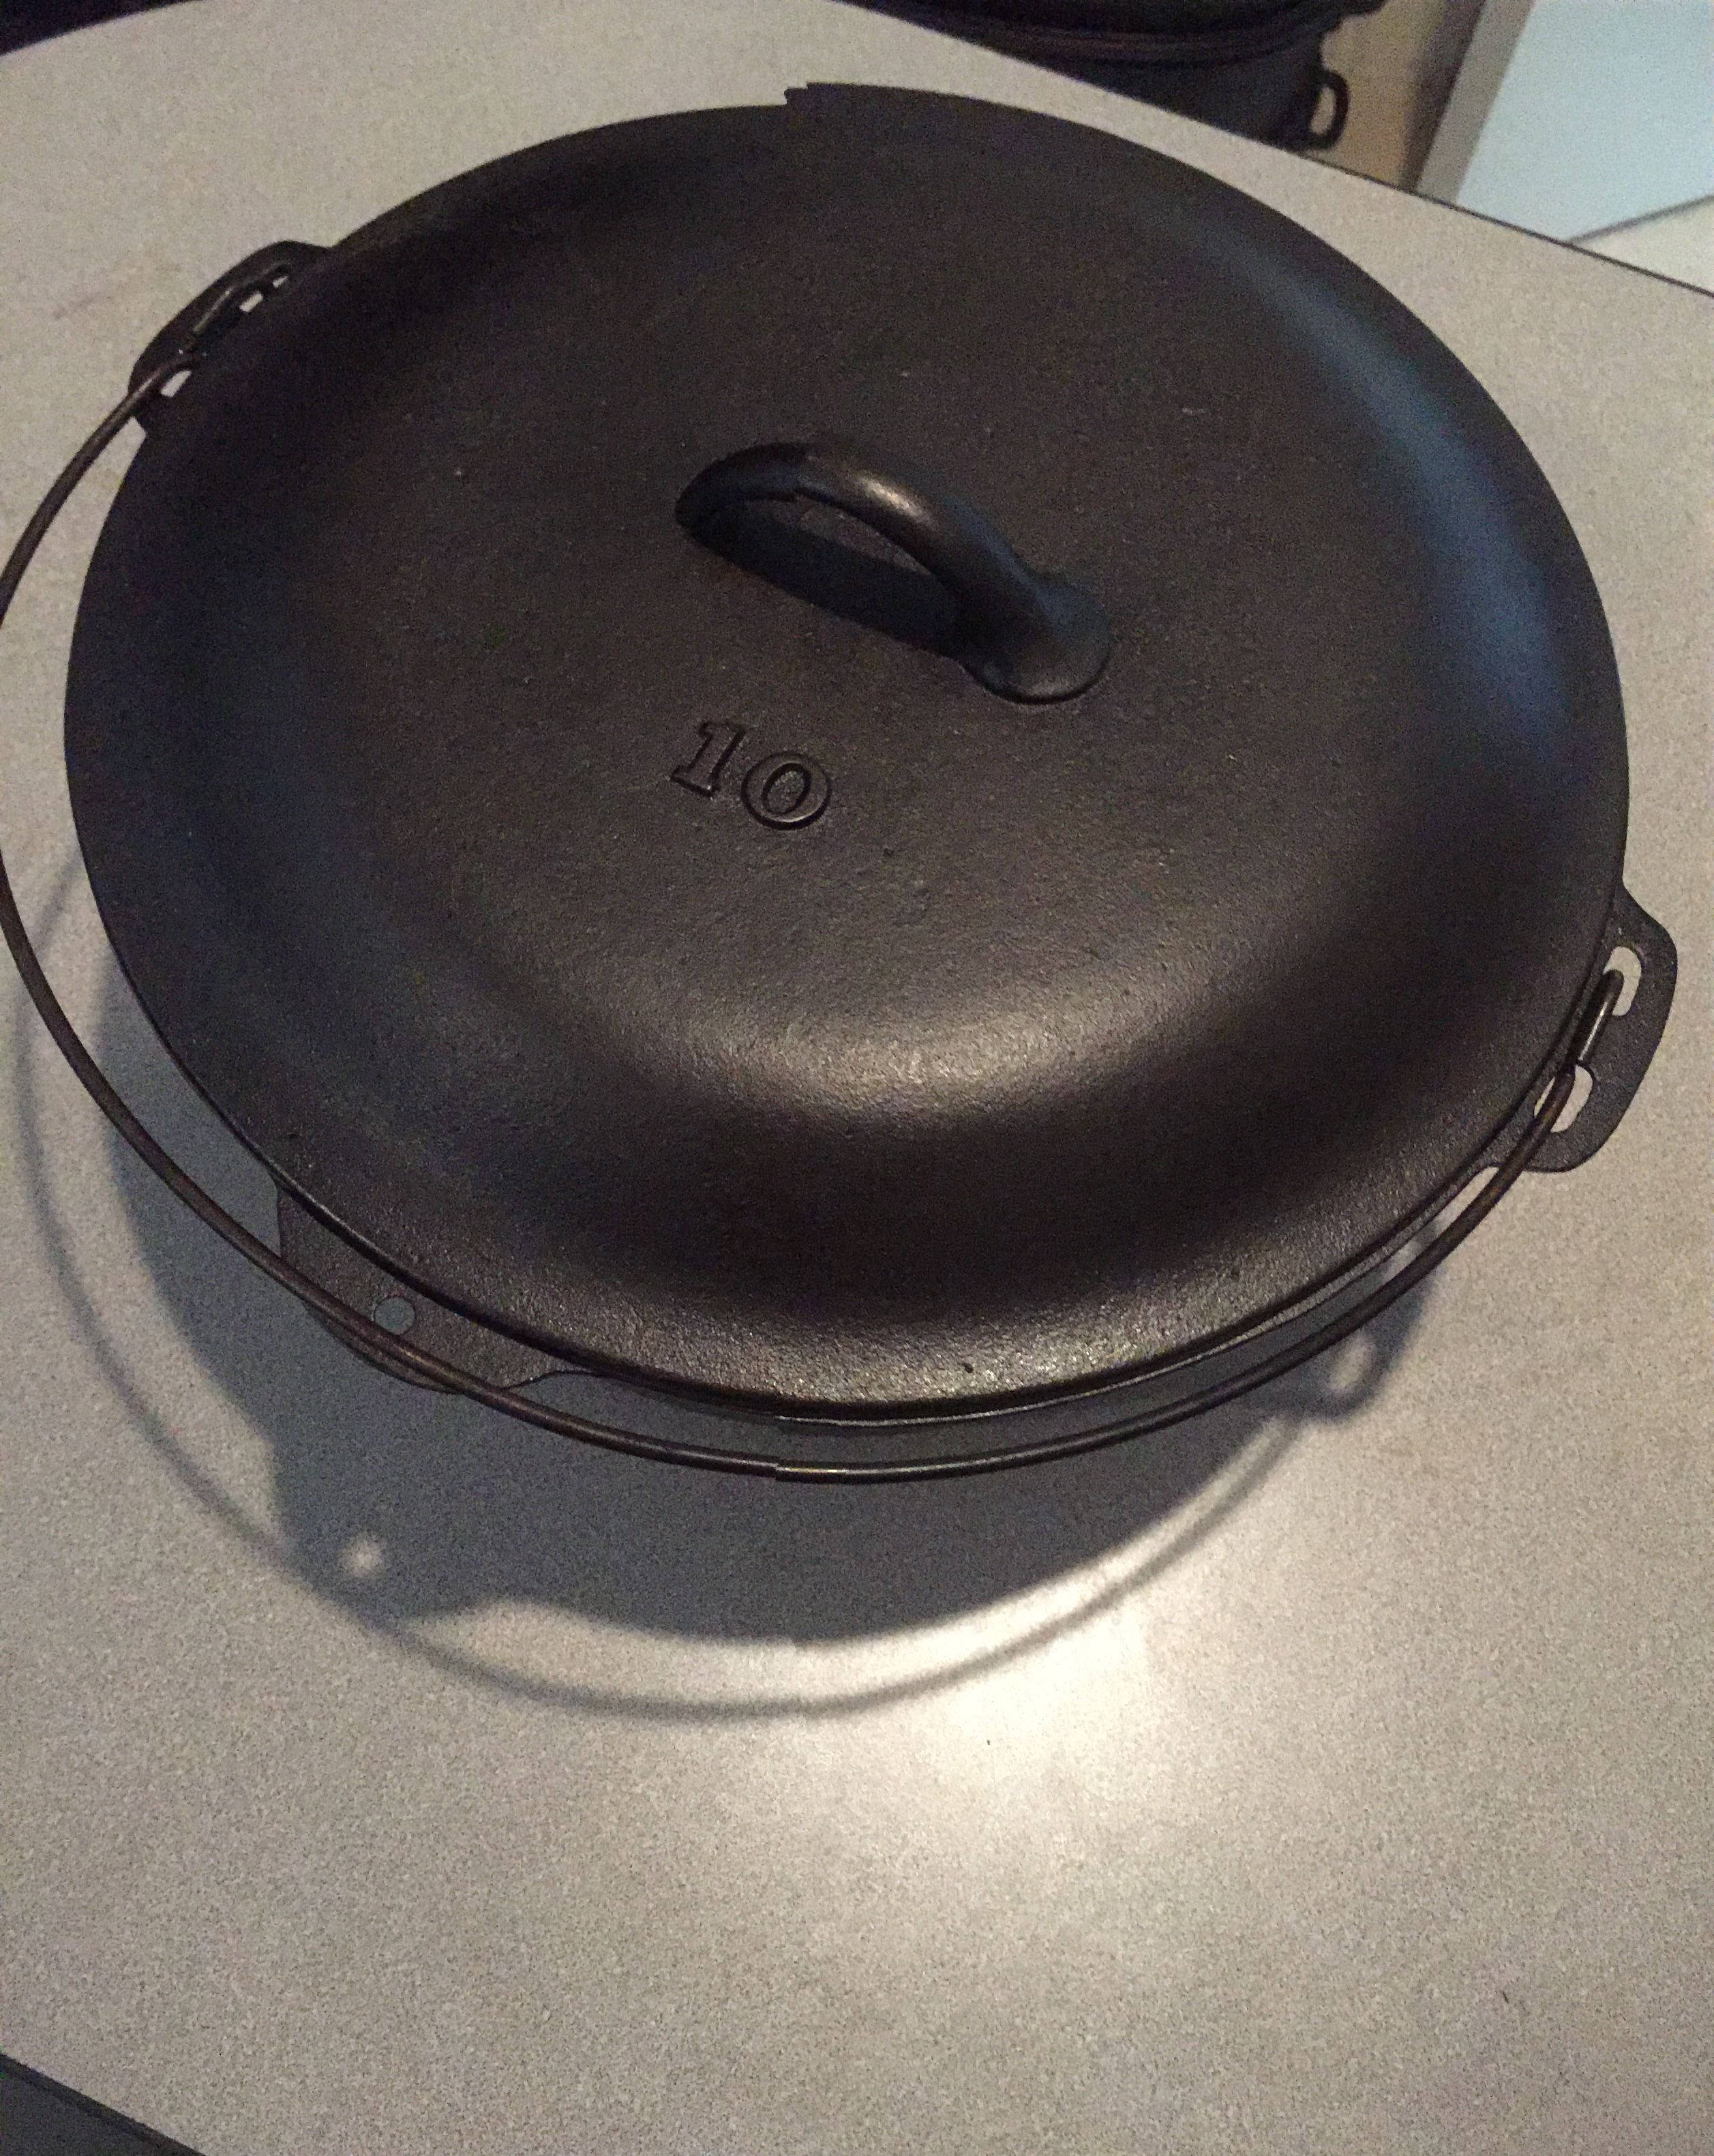 Unknown Raised No 10 Dutch Oven Cast Iron Cooking Cast Iron Cookware Griswold Cast Iron